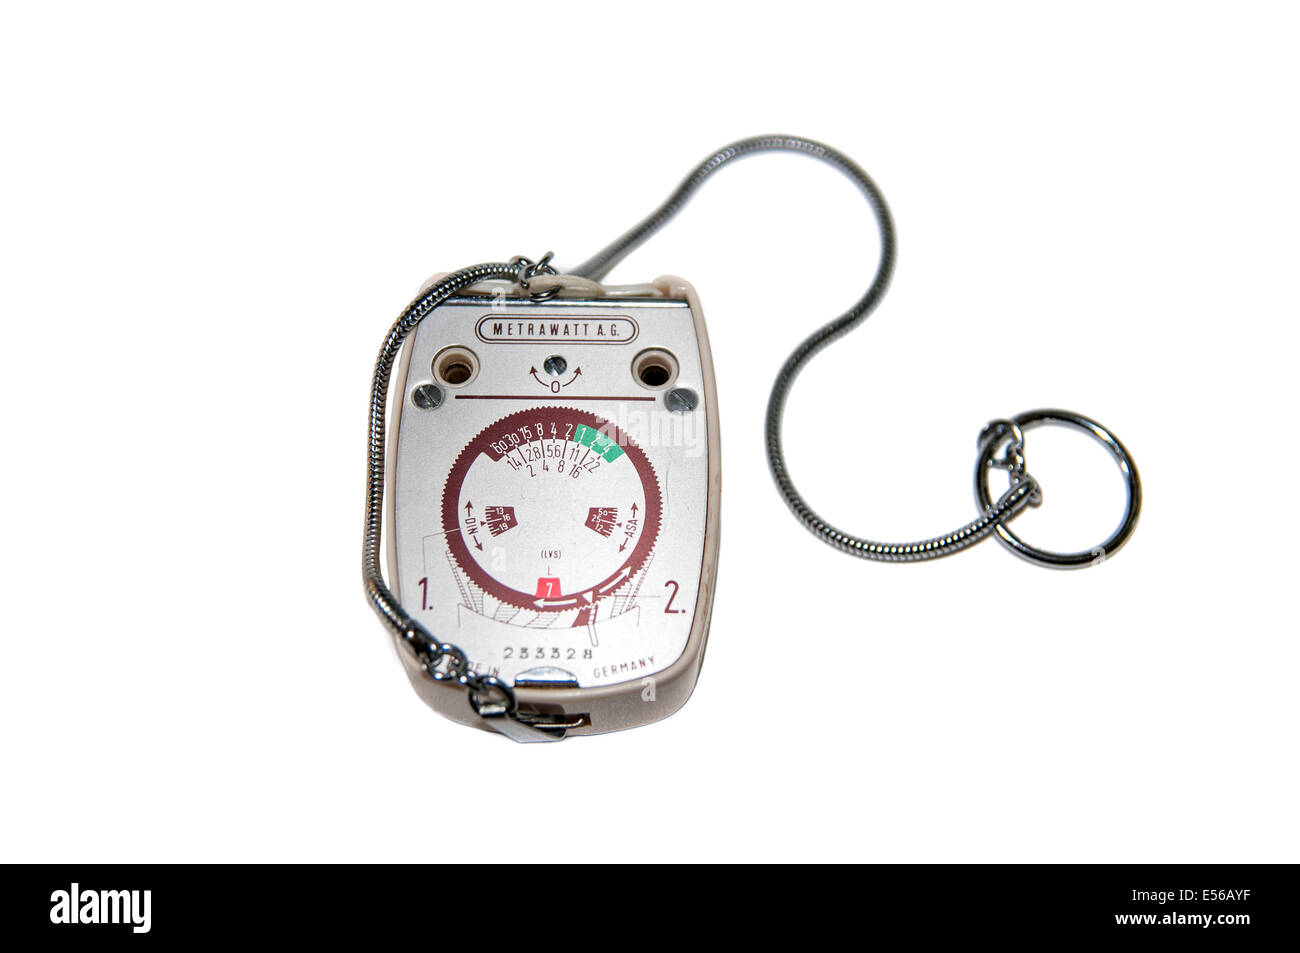 German made Metrawatt Horvex 3 (Circa 1960) Light meter on white background - Stock Image